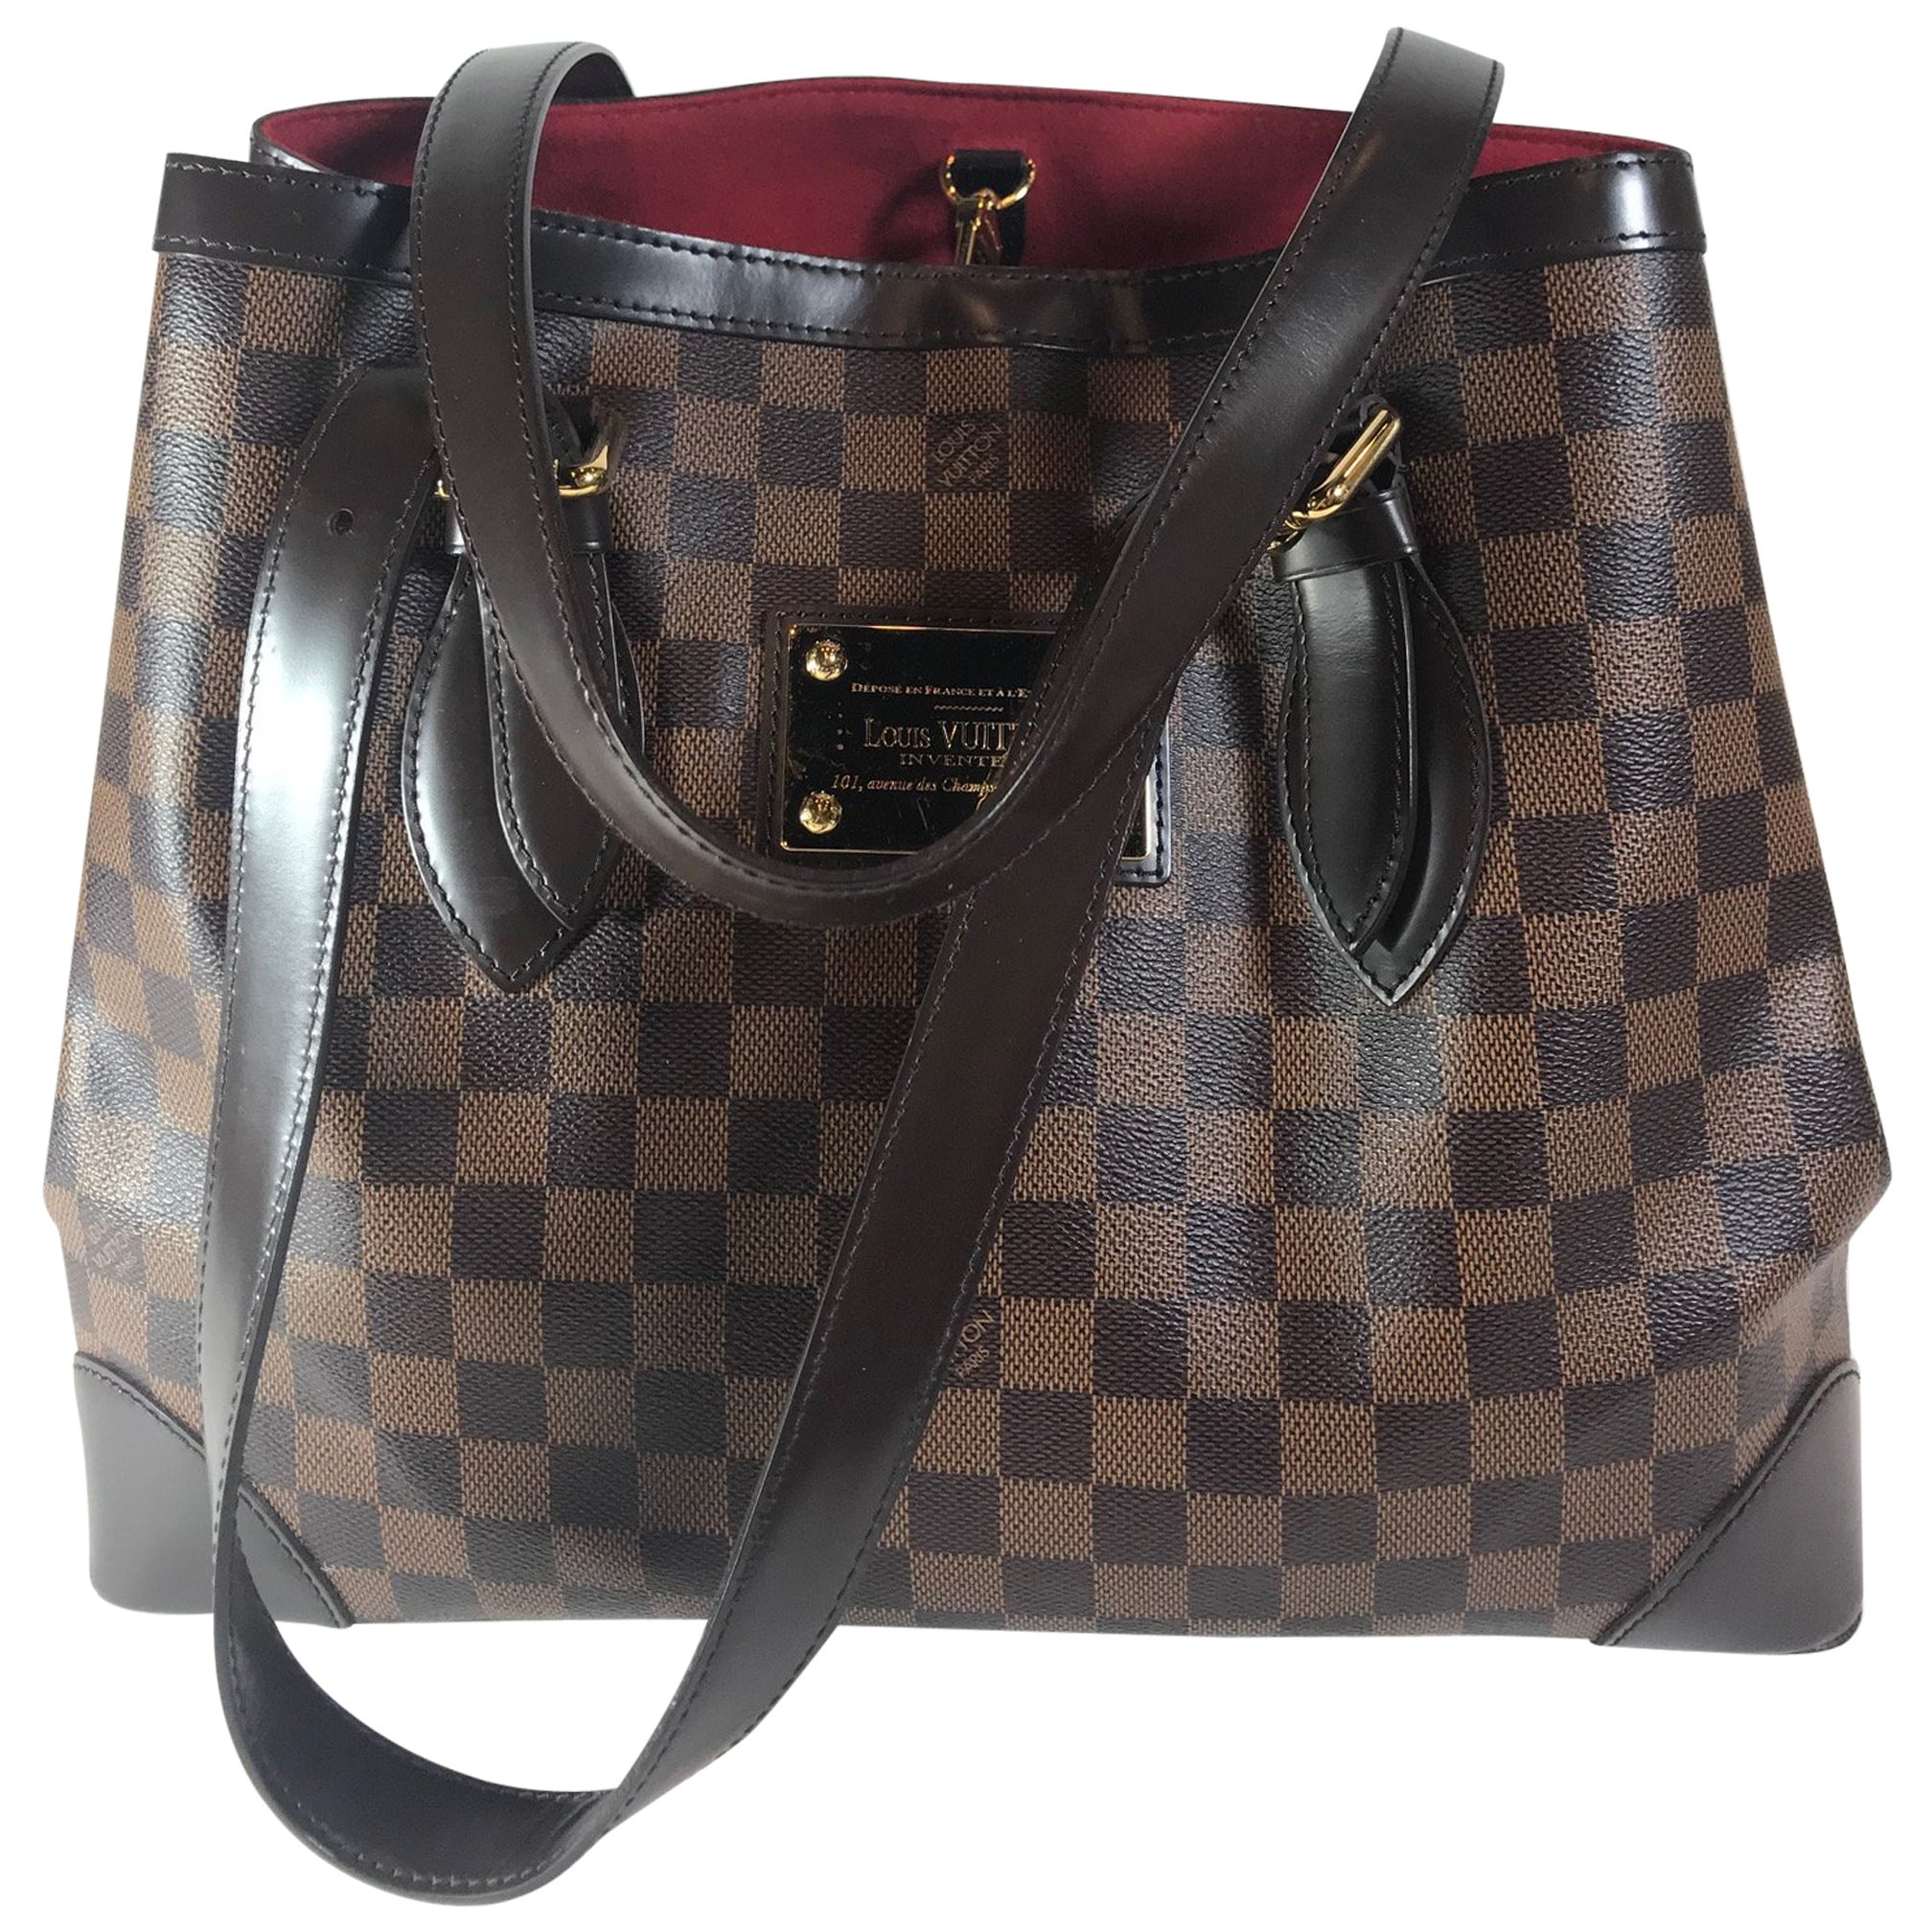 7087a2140cb4 Louis Vuitton Damier Ebene Hampstead PM at 1stdibs